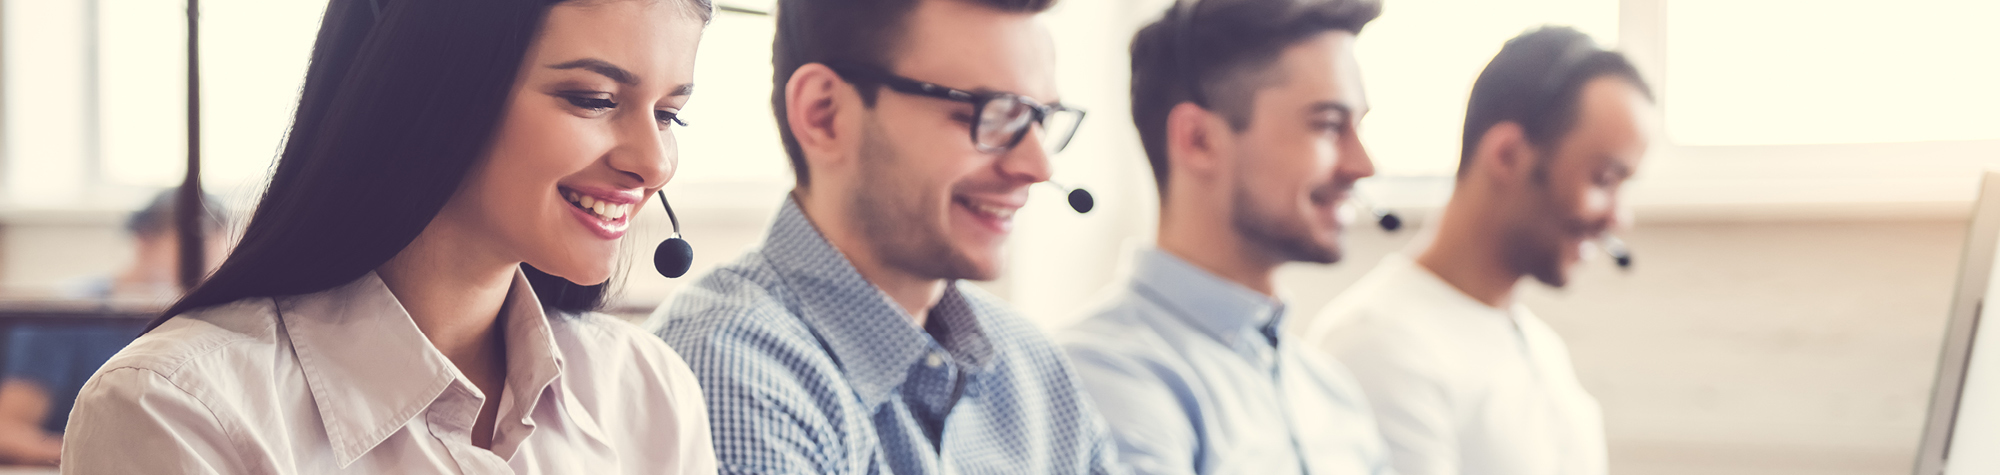 Search Consultancy Call Centre Jobs In Manchester Header Image. Female Call Centre Agent Wearing A Call Centre Headset Smiling In A Busy Call Centre Featuring Three Males Also Wearing Call Centre Headsets.